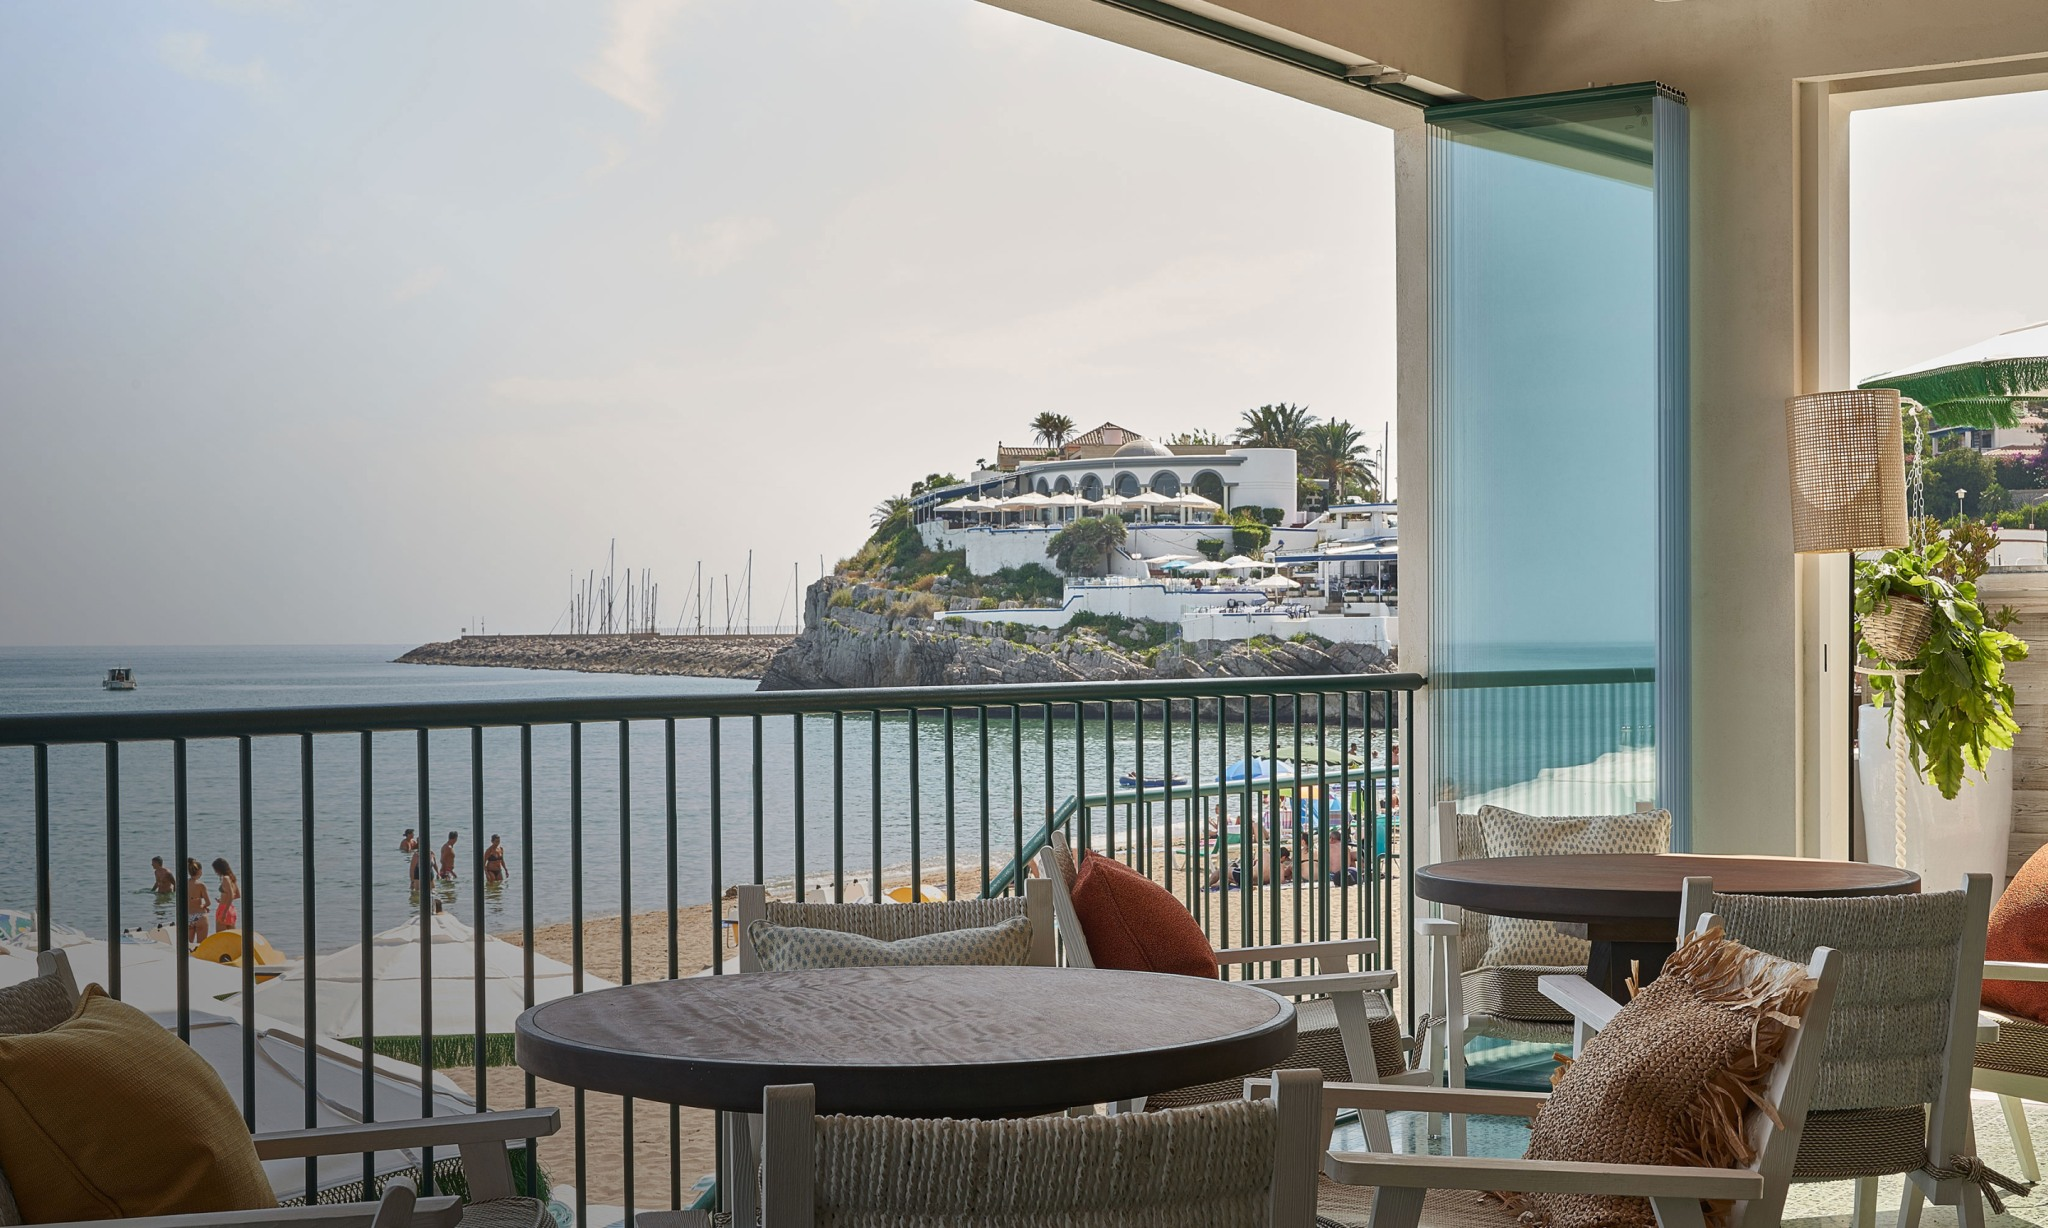 An indoor seating area looking over a beach and the sea.